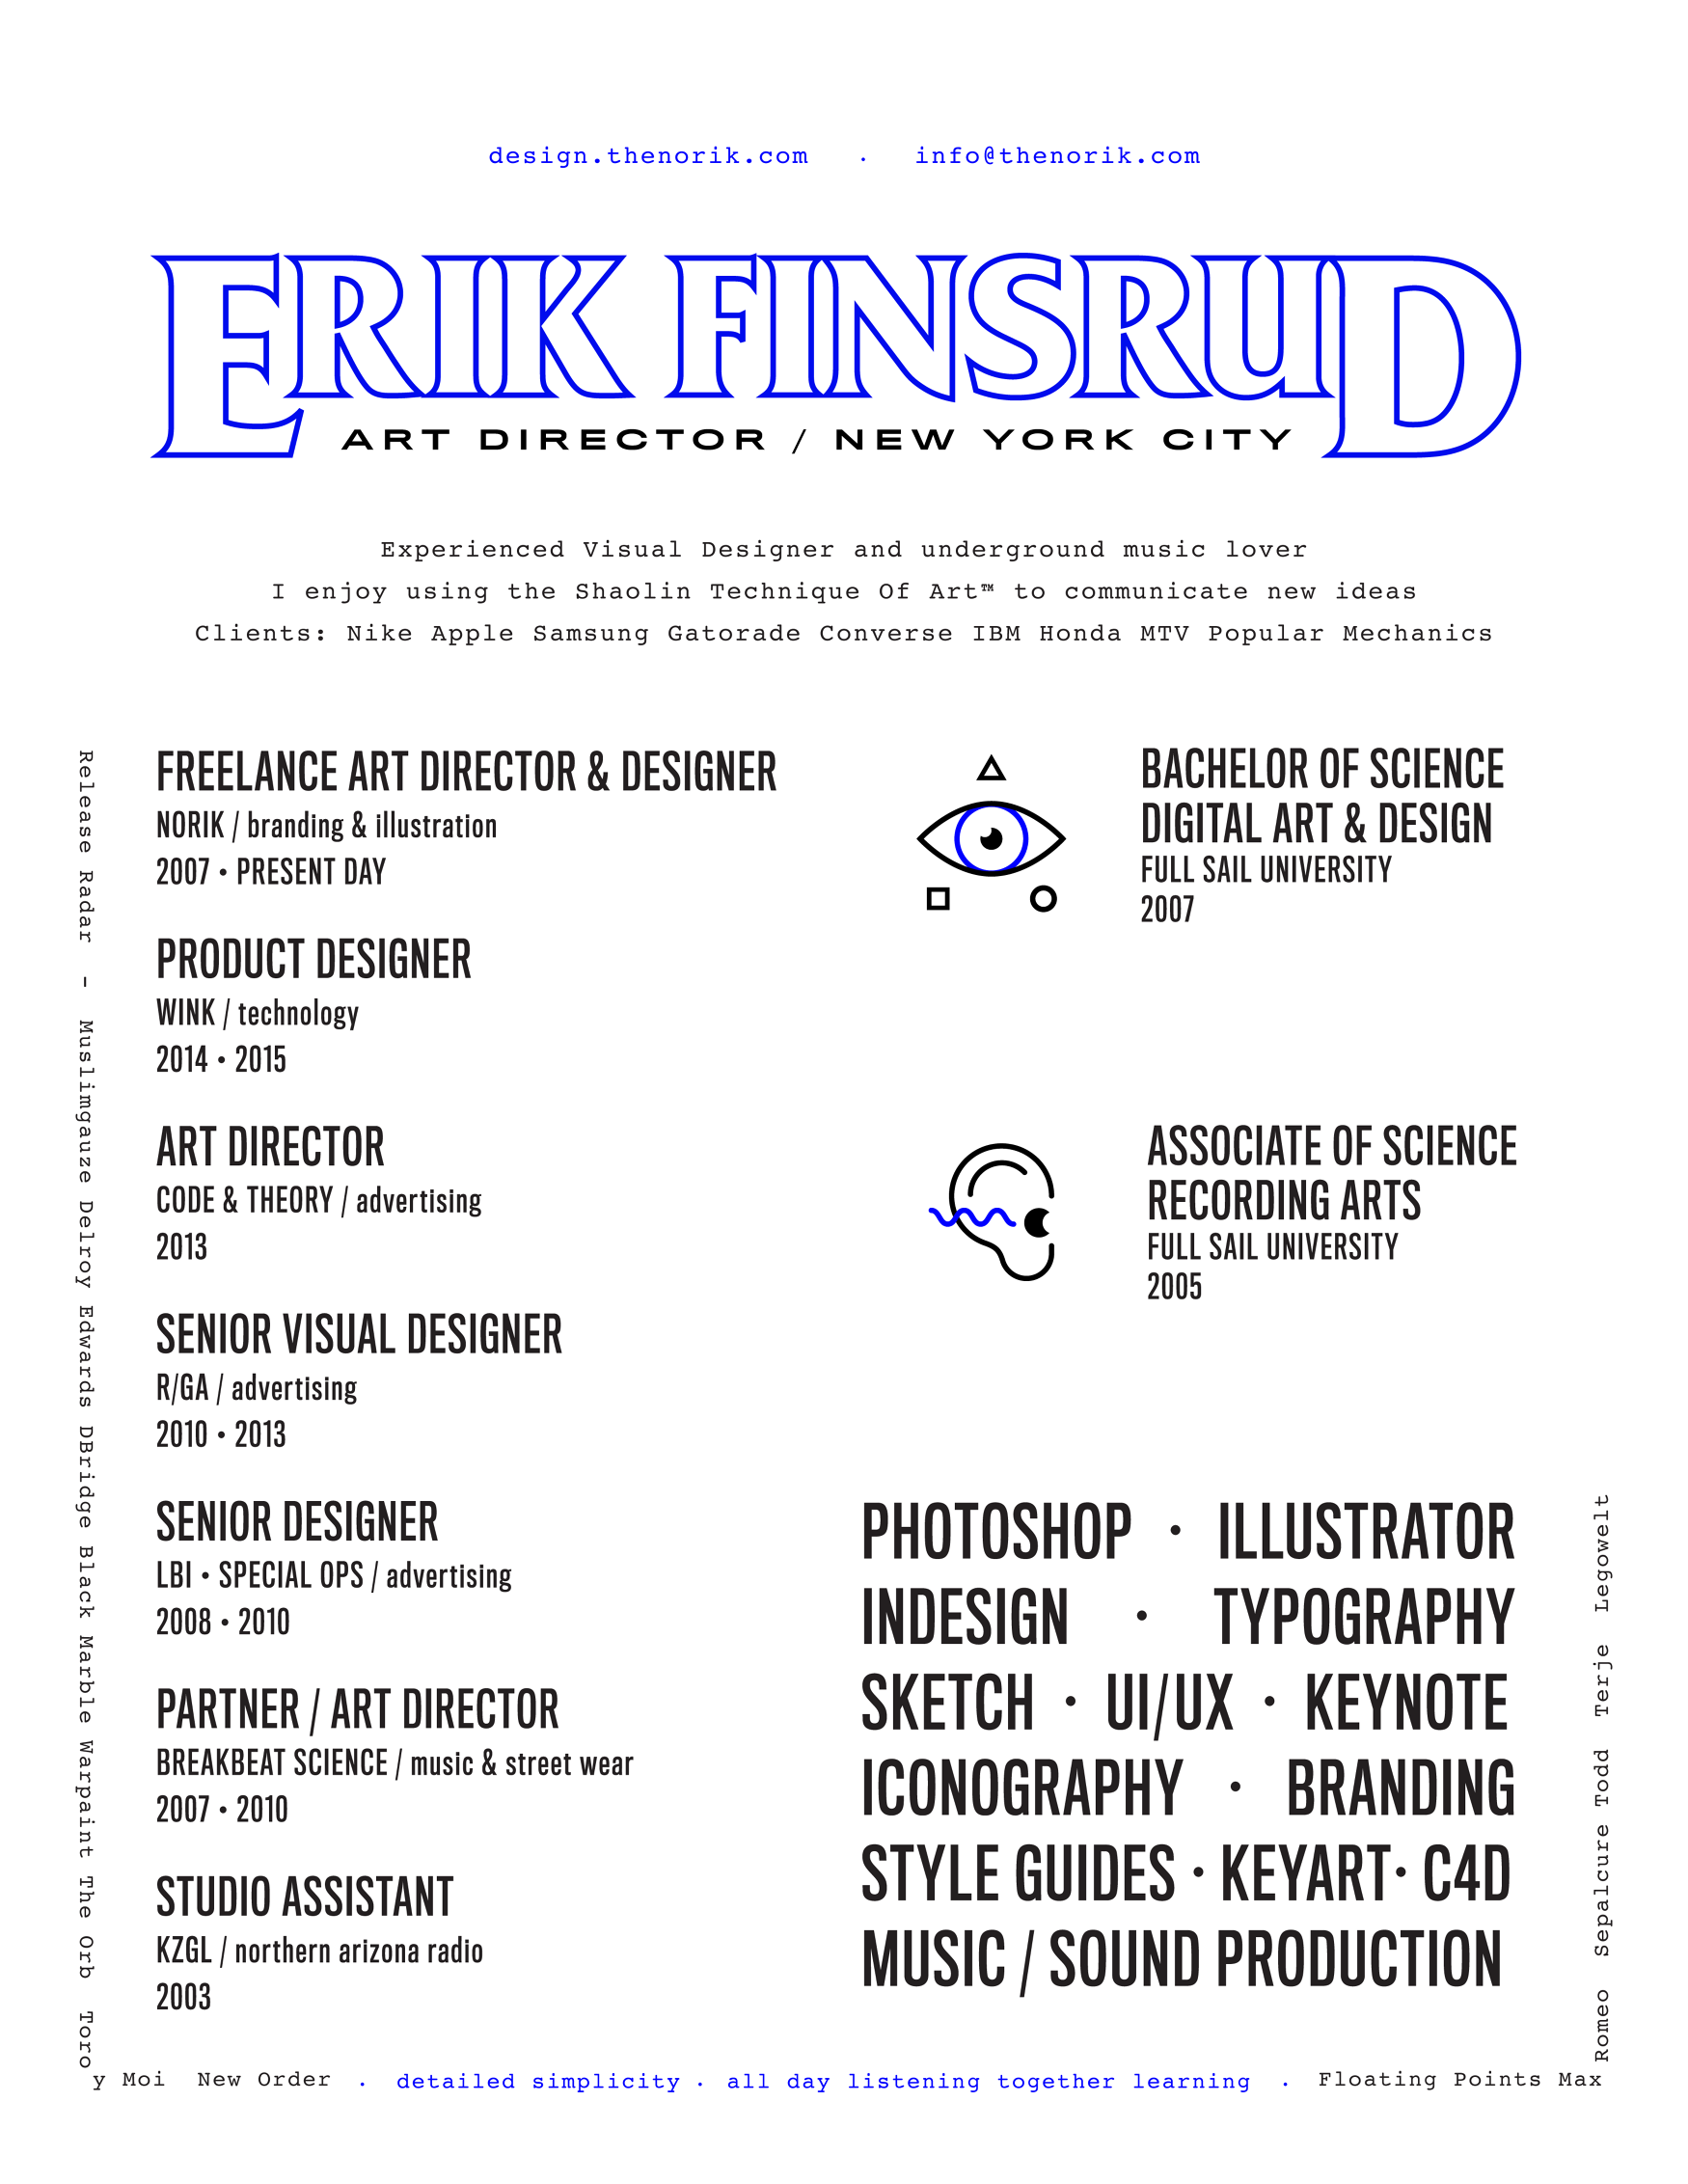 portfolio resume of erik finsrud art director the norik